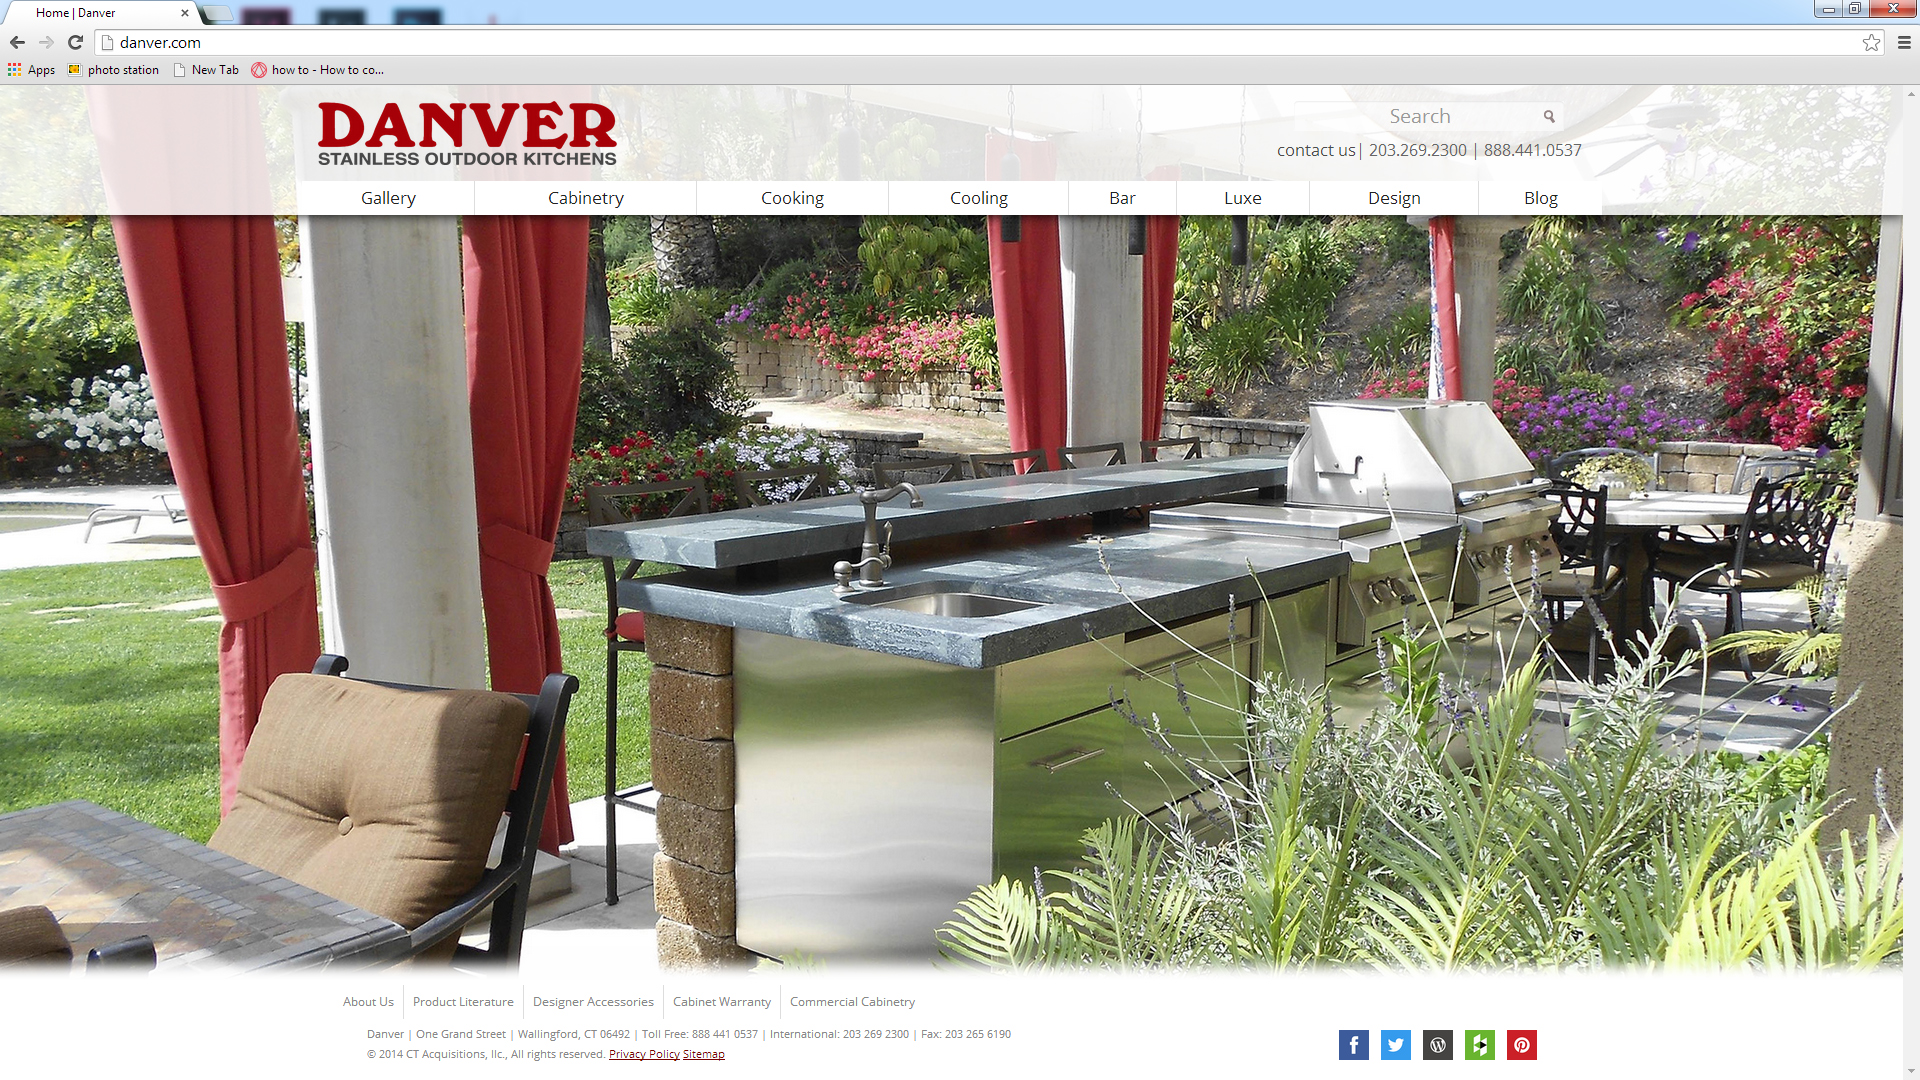 Danver Stainless Outdoor Kitchens Launches Redesigned Website